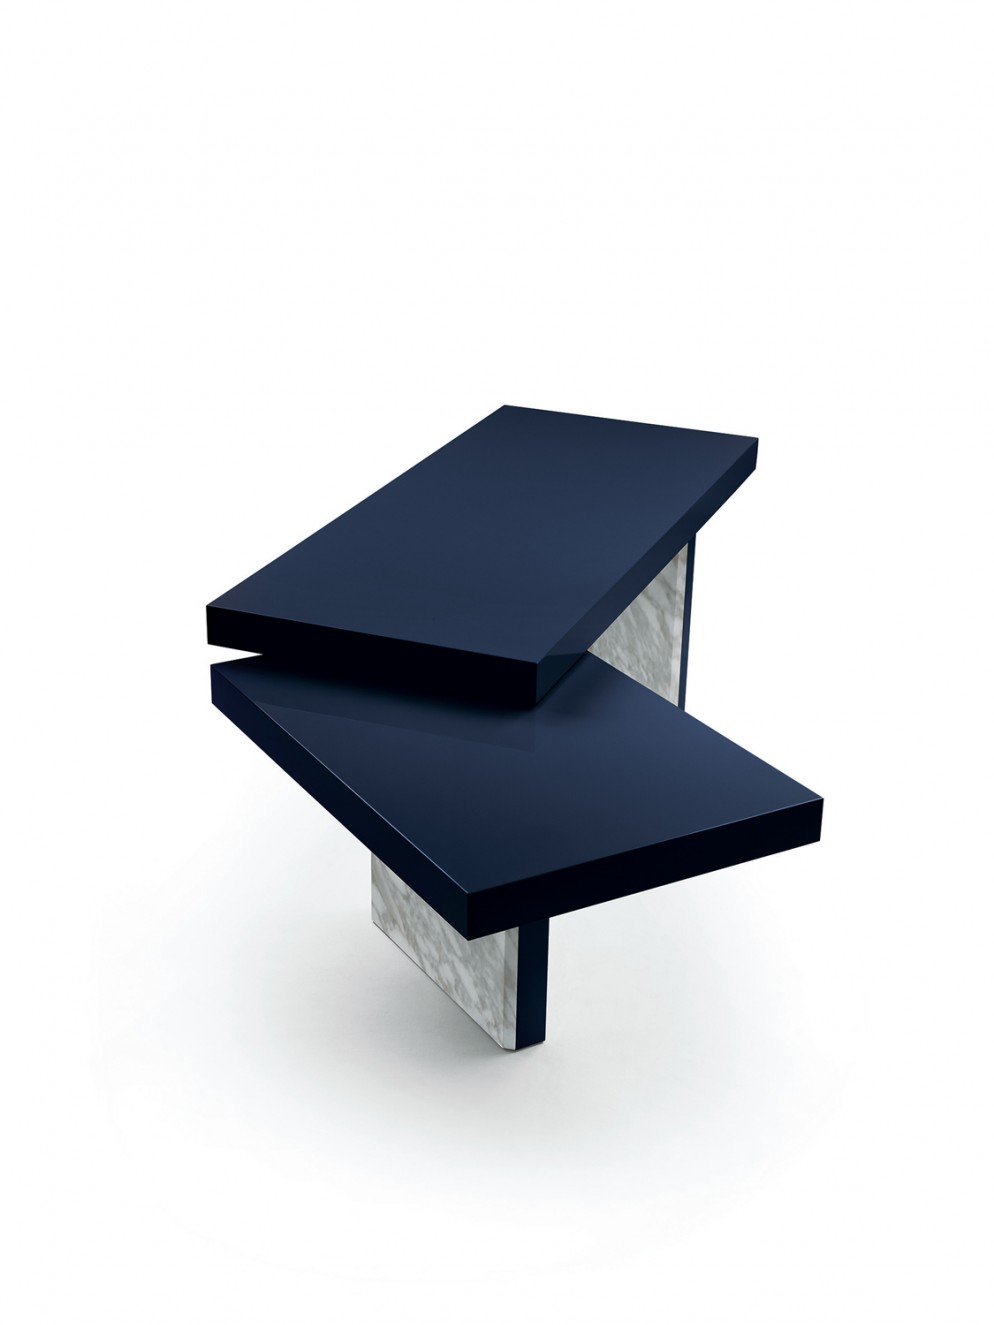 Flexformo-Mood-BENJAMIN_Writing Desk1